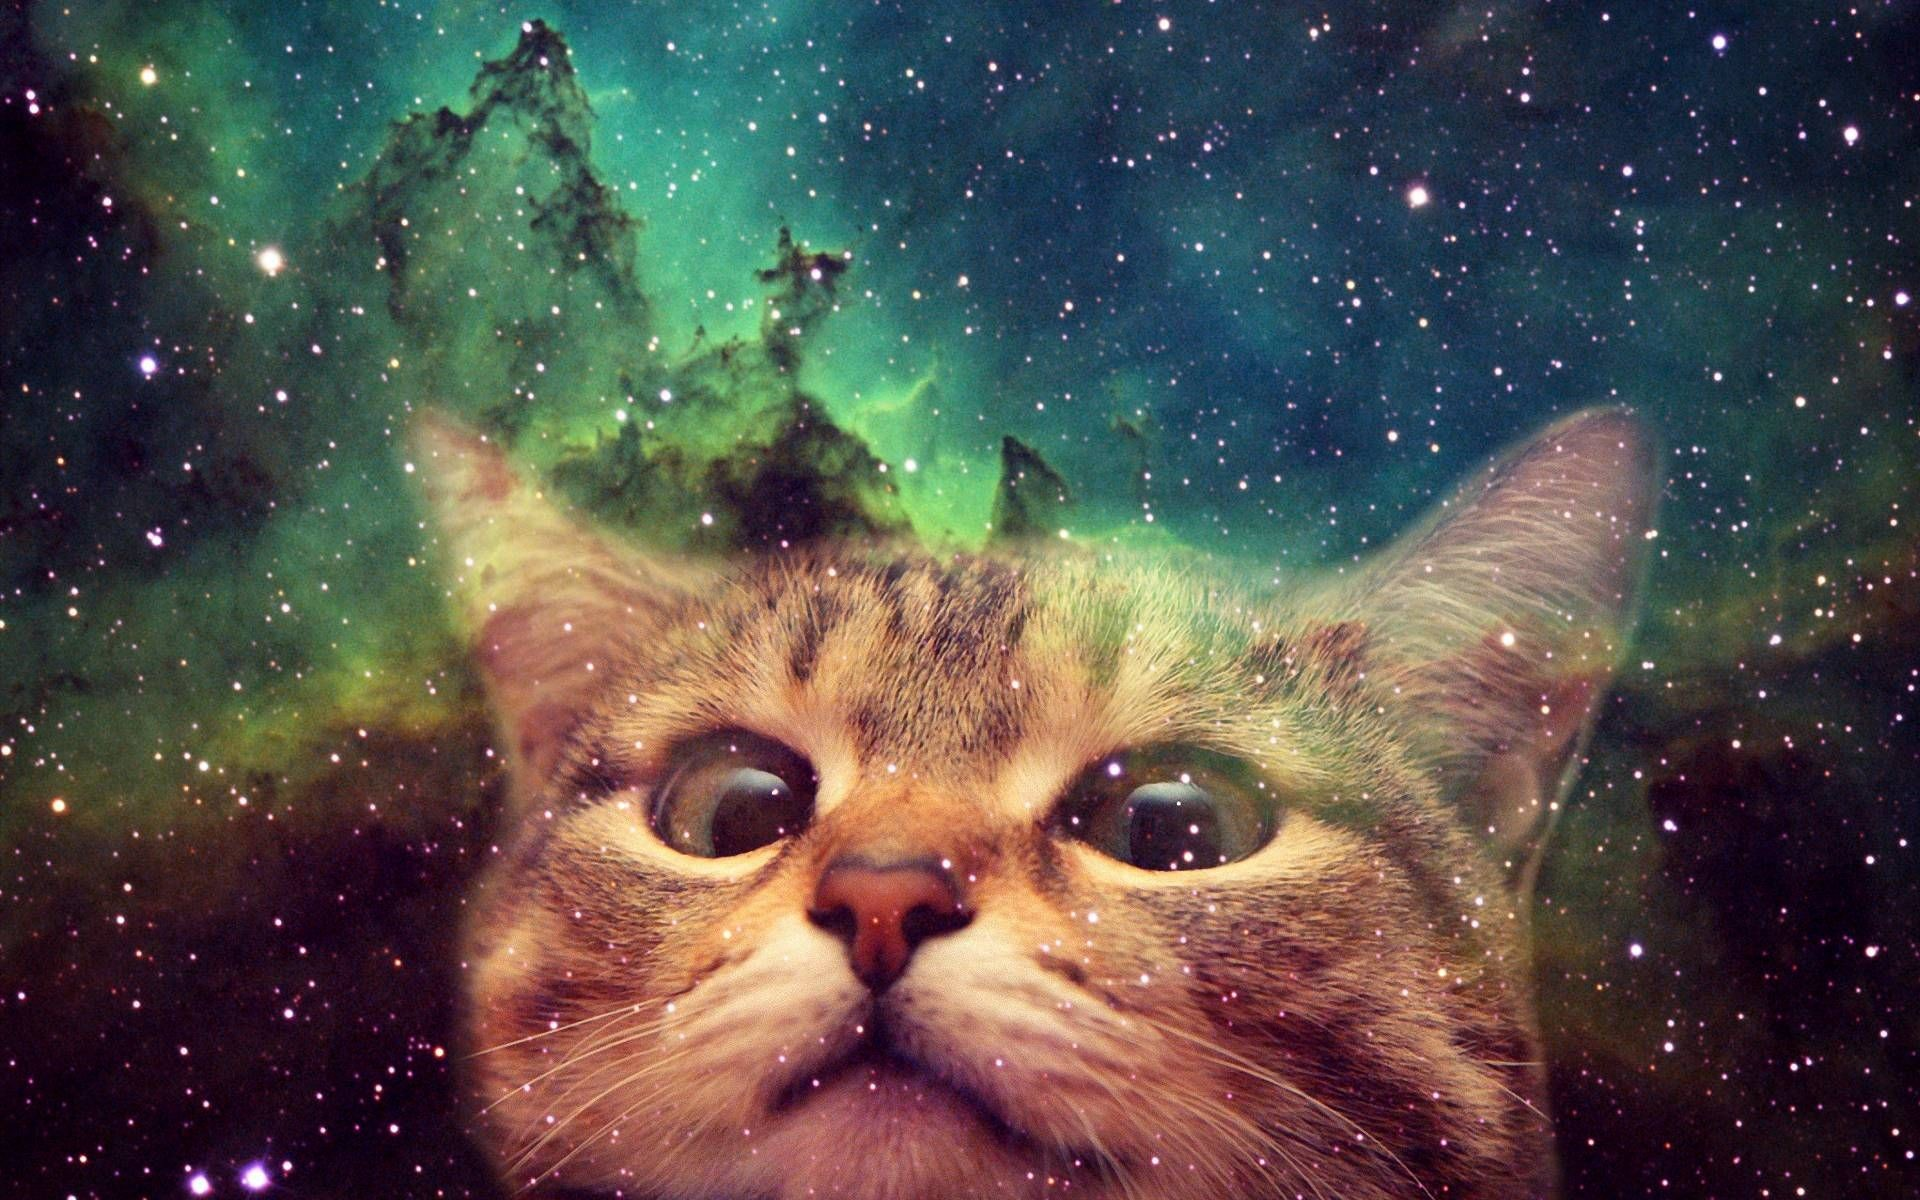 Res: 1920x1200, Space Cat Background For Desktop Wallpaper 1920 x 1200 px KB awesome cute  hipster animated cool